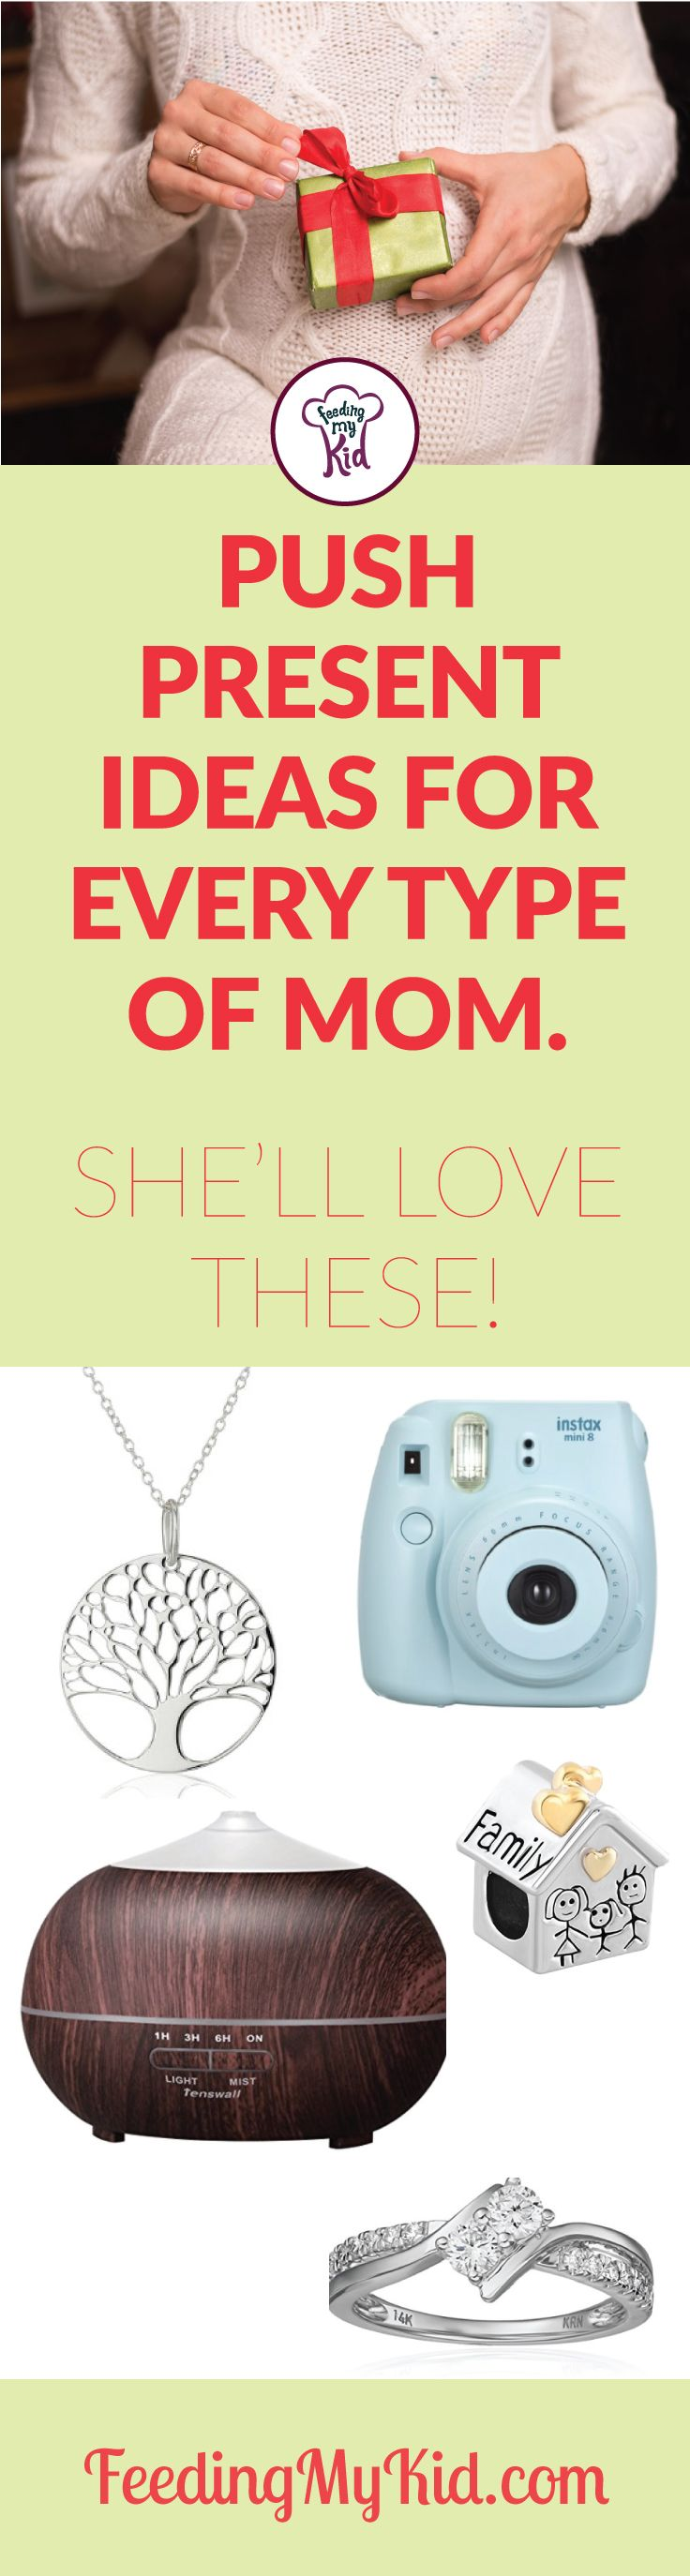 Need some creative push present ideas? This list has them! From ideas for the tech mom to the crafty mom, she'll love these gifts.